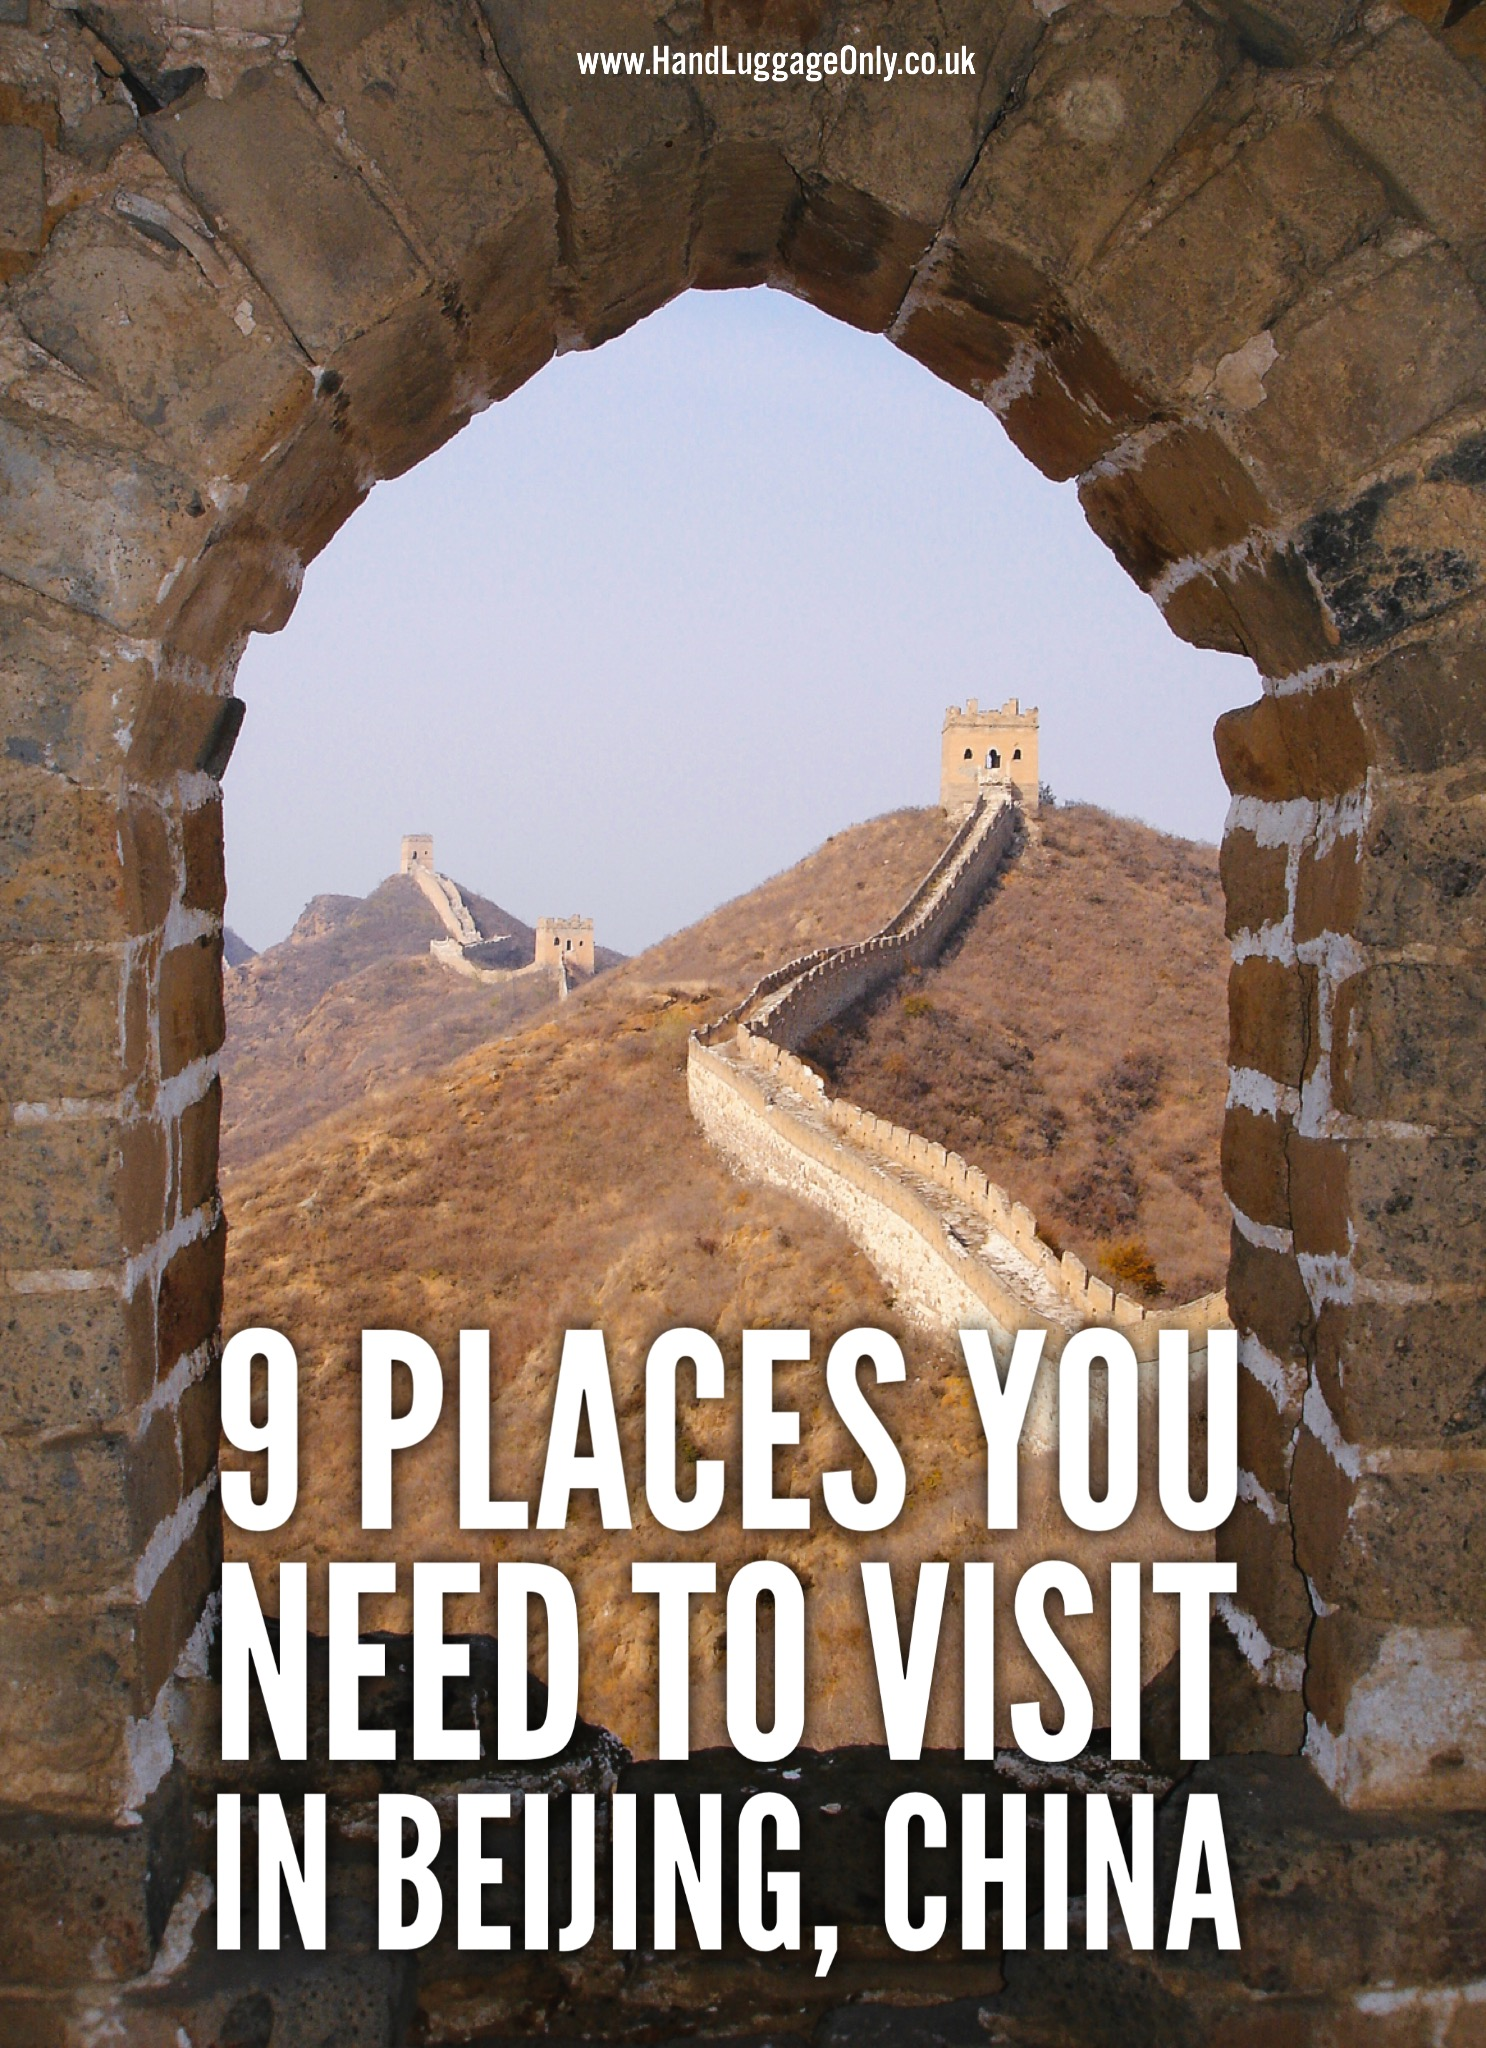 9 Places You Need To Visit In Beijing, China (1)